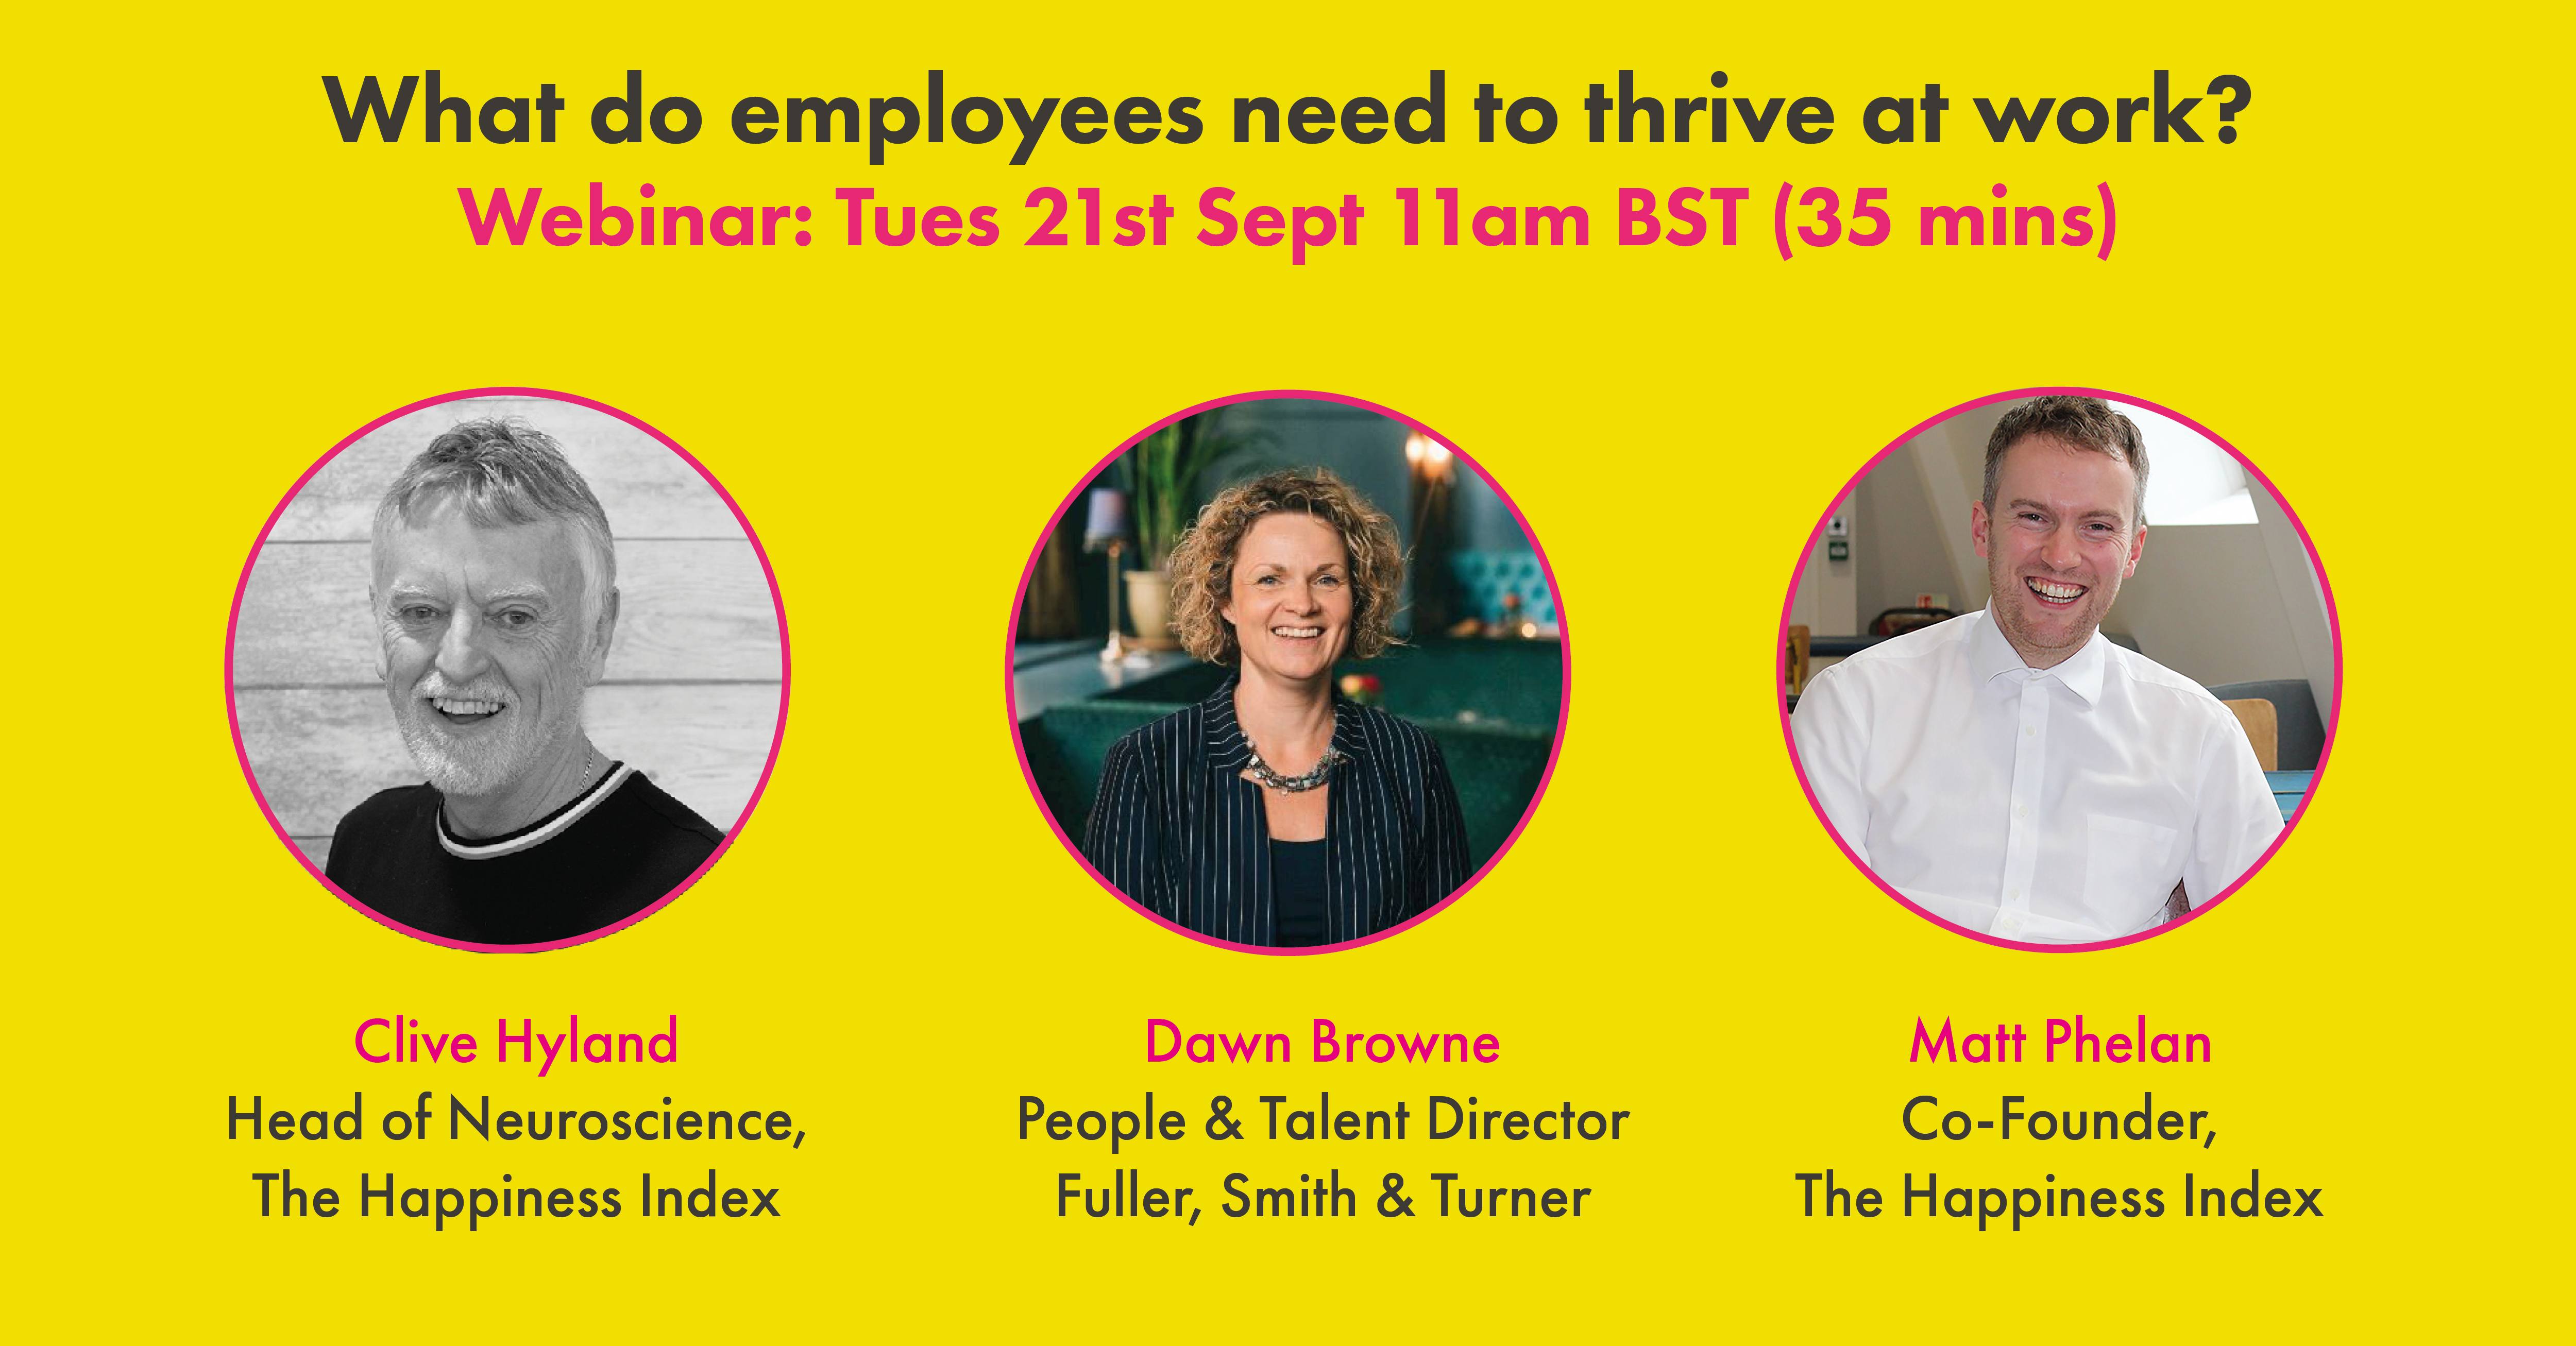 What do employees need to thrive at work banner